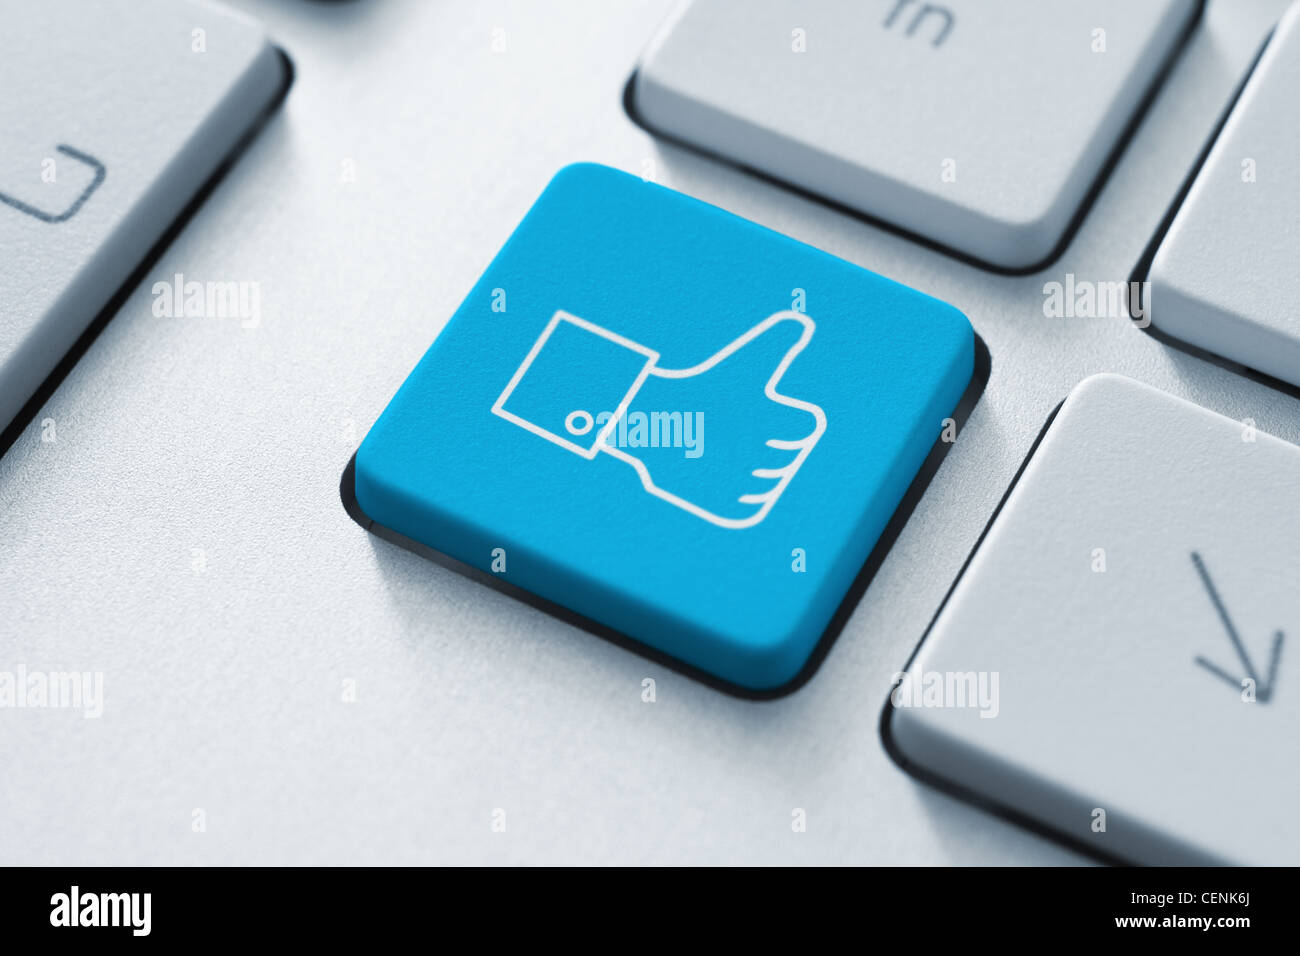 Thumb up like button on the keyboard. Toned Image. - Stock Image